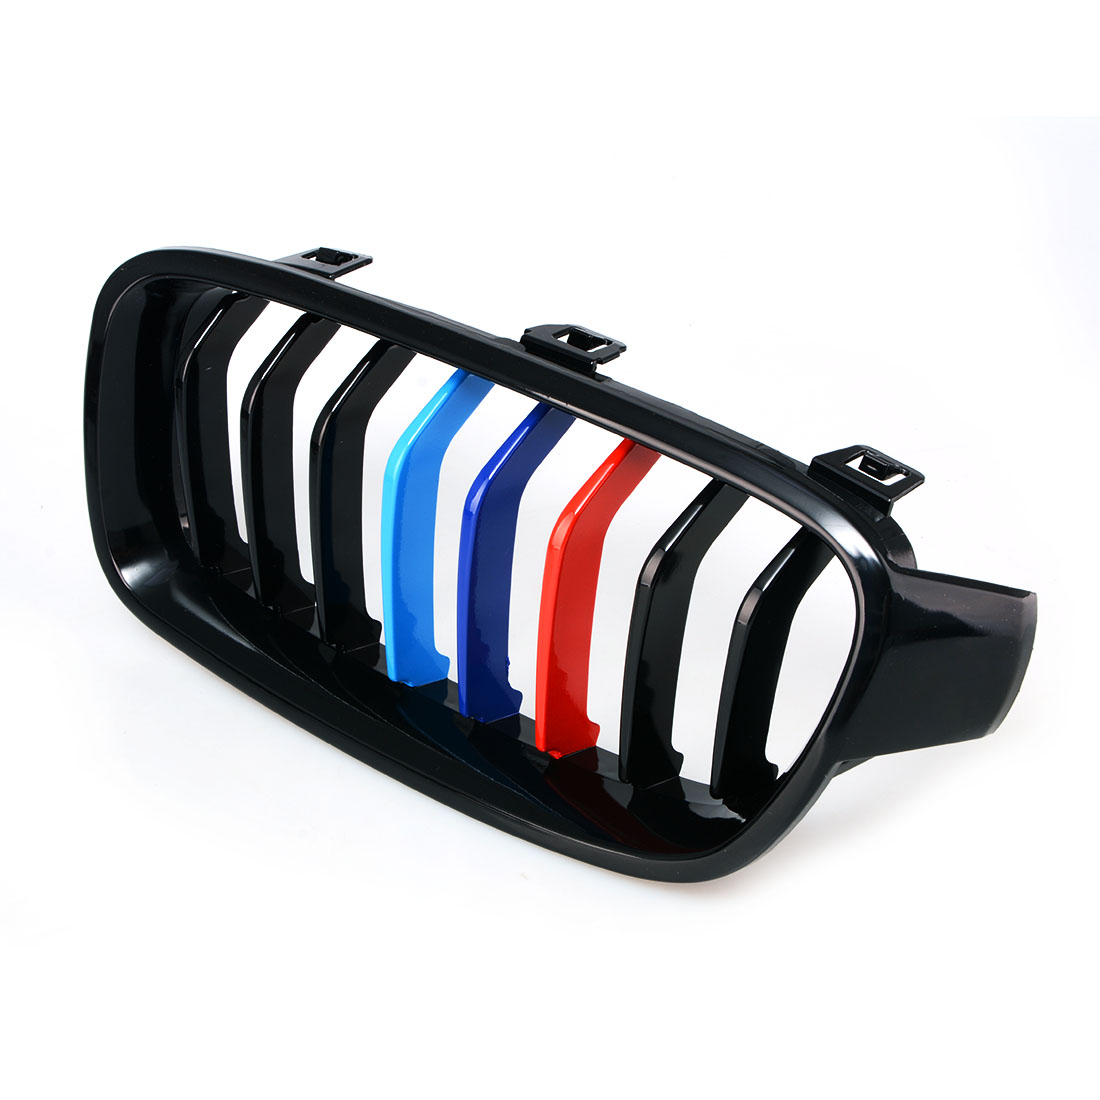 3-Colored Sport Car Front Plastic Kidney Grill Bar Cover For BMW 3 Series F30 2013 2014 2015 8 Bars3-Colored Sport Car Front Plastic Kidney Grill Bar Cover For BMW 3 Series F30 2013 2014 2015 8 Bars